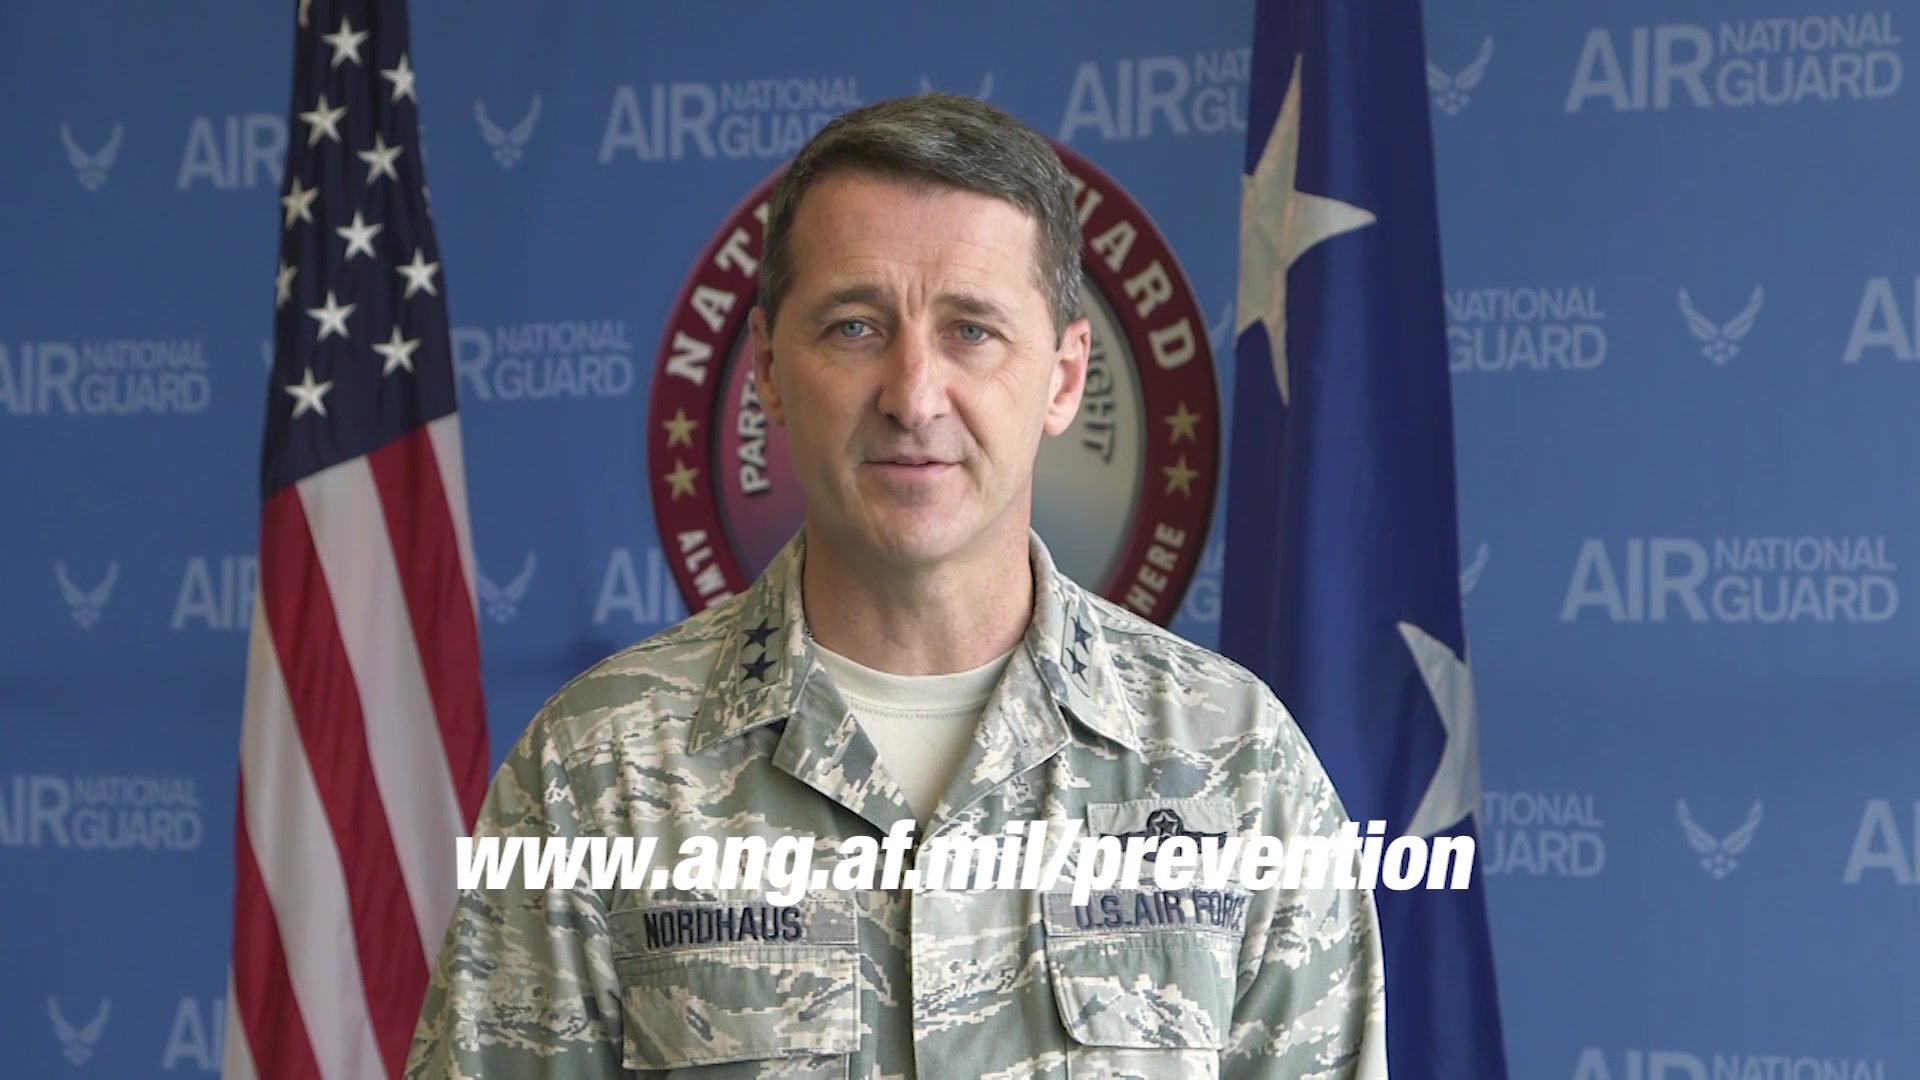 Air National Guard leadership introducing prevention webpage.